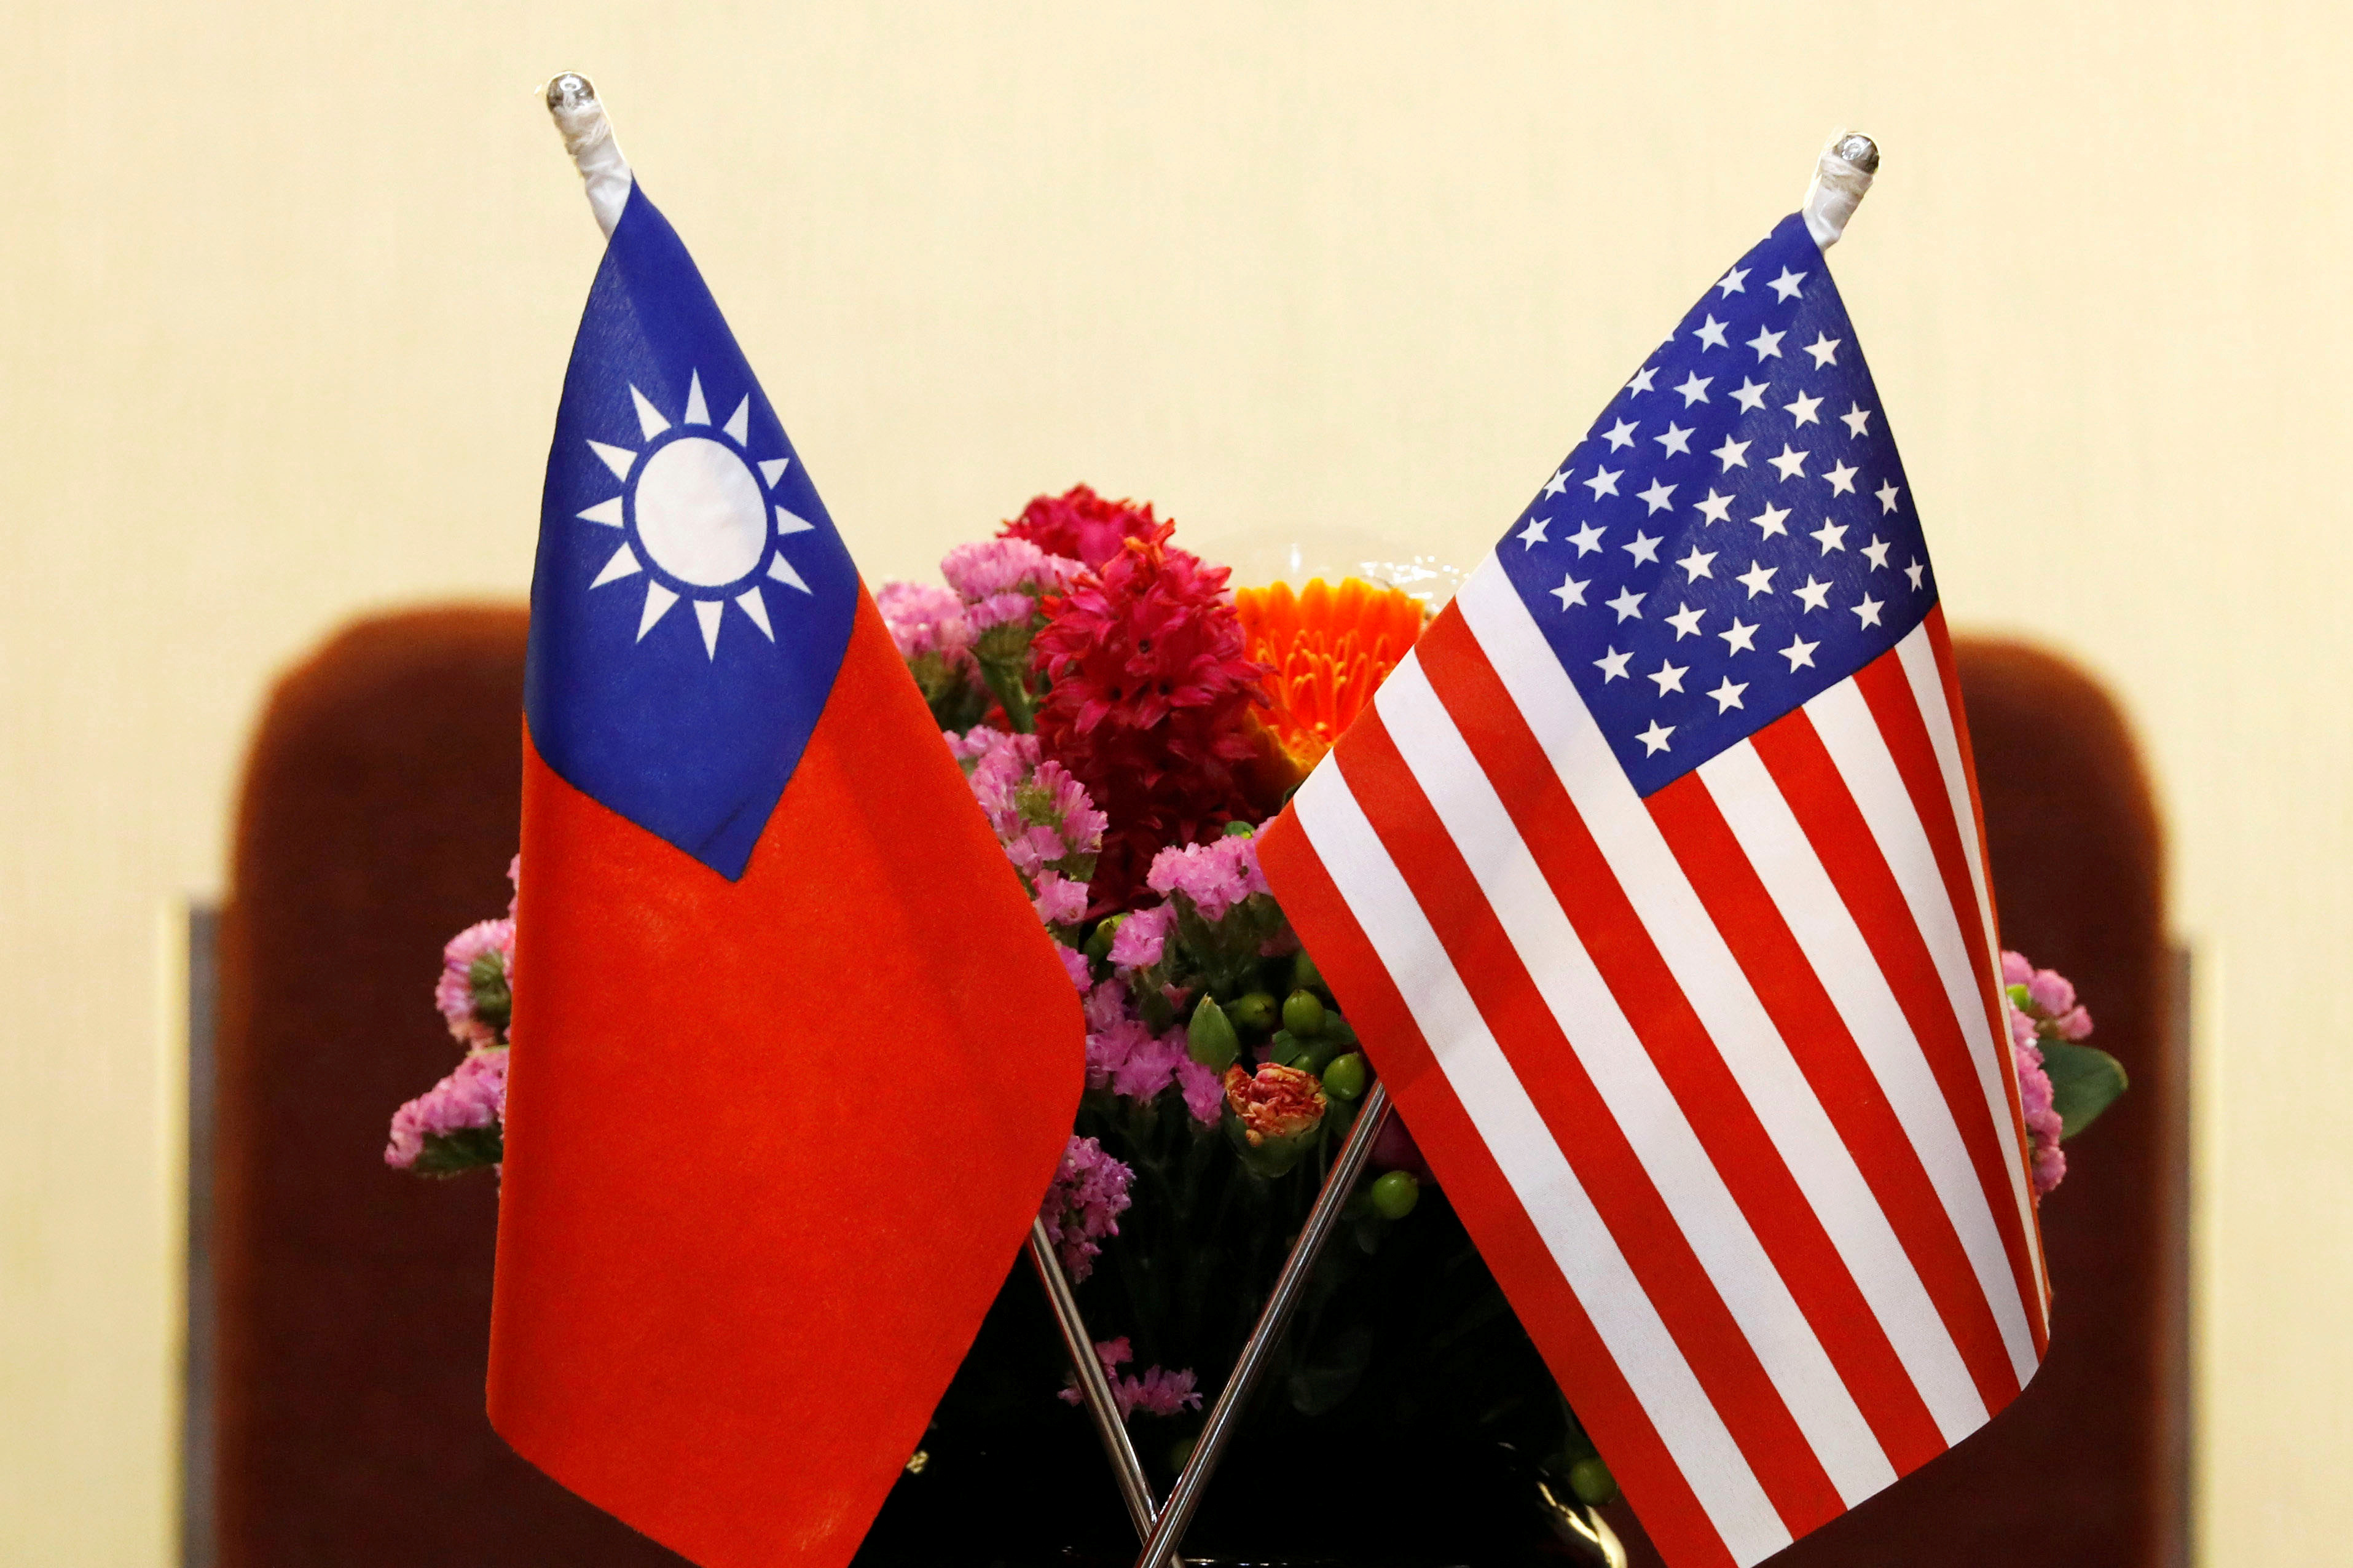 Flags of Taiwan and U.S. are placed for a meeting between U.S. House Foreign Affairs Committee Chairman Ed Royce speaks and with Su Chia-chyuan, President of the Legislative Yuan in Taipei, Taiwan March 27, 2018. REUTERS/Tyrone Siu/File Photo